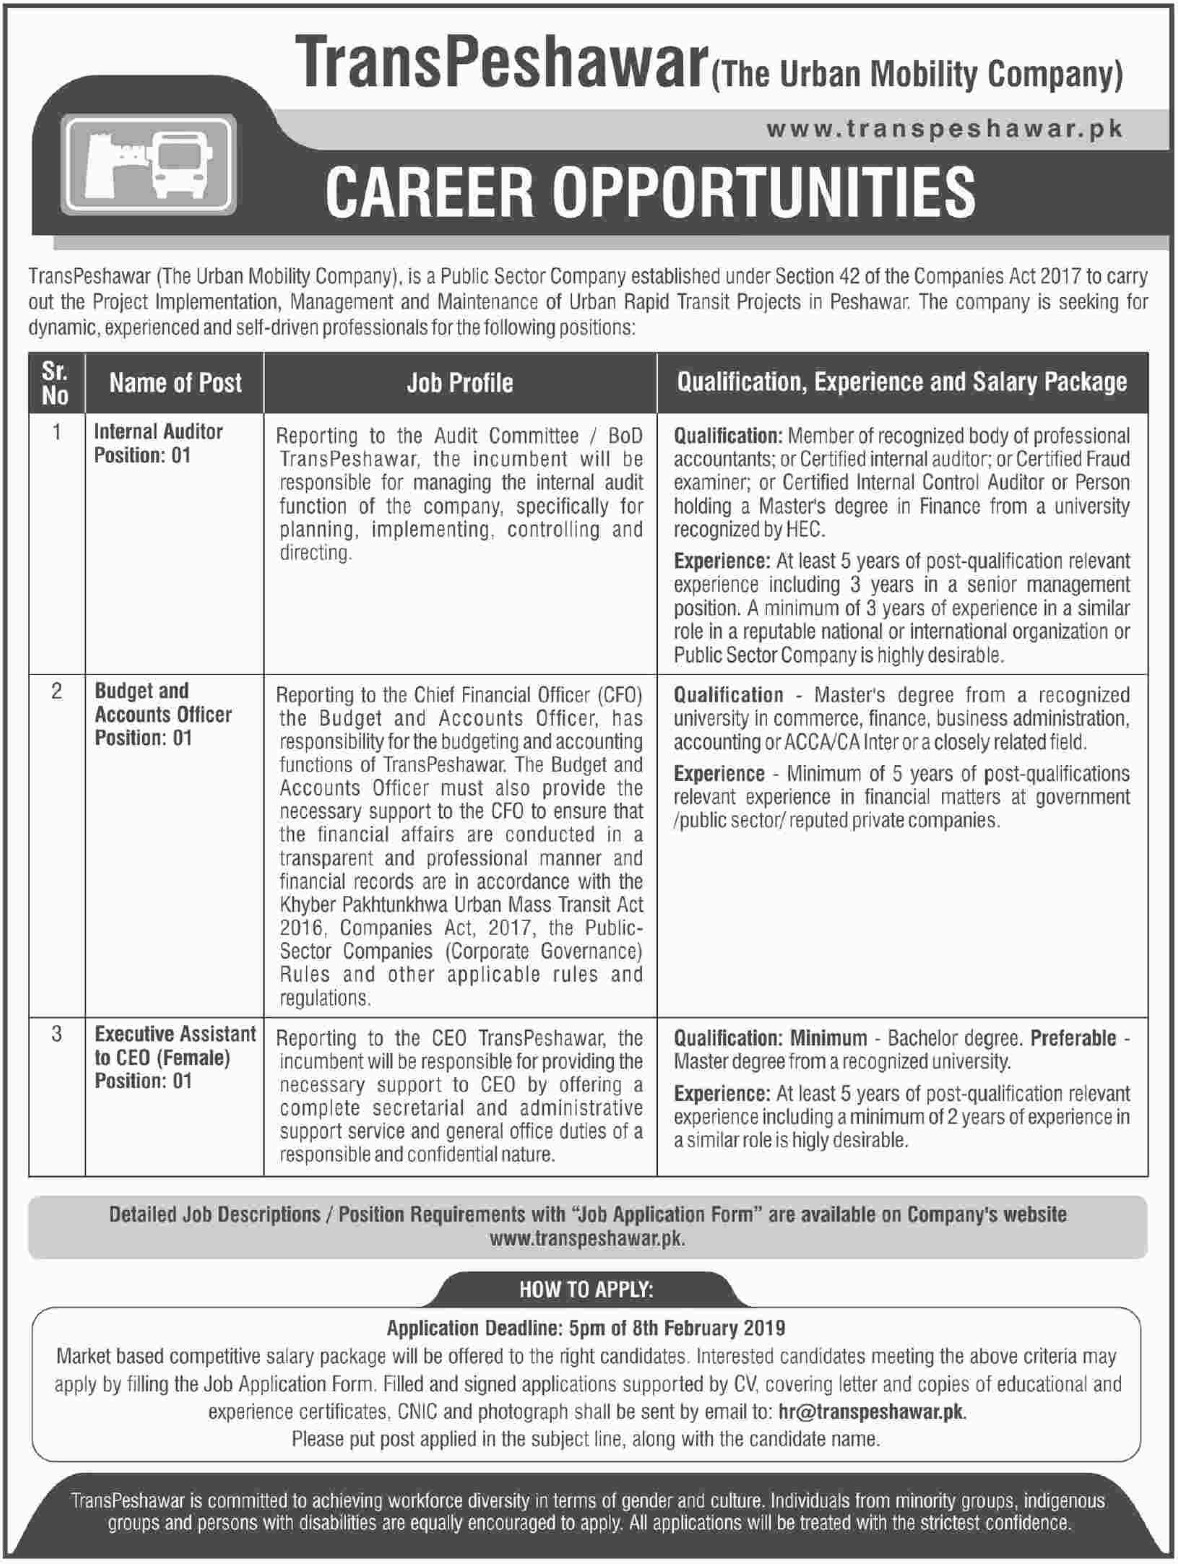 TransPeshawar Jobs 2019 KPK Latest